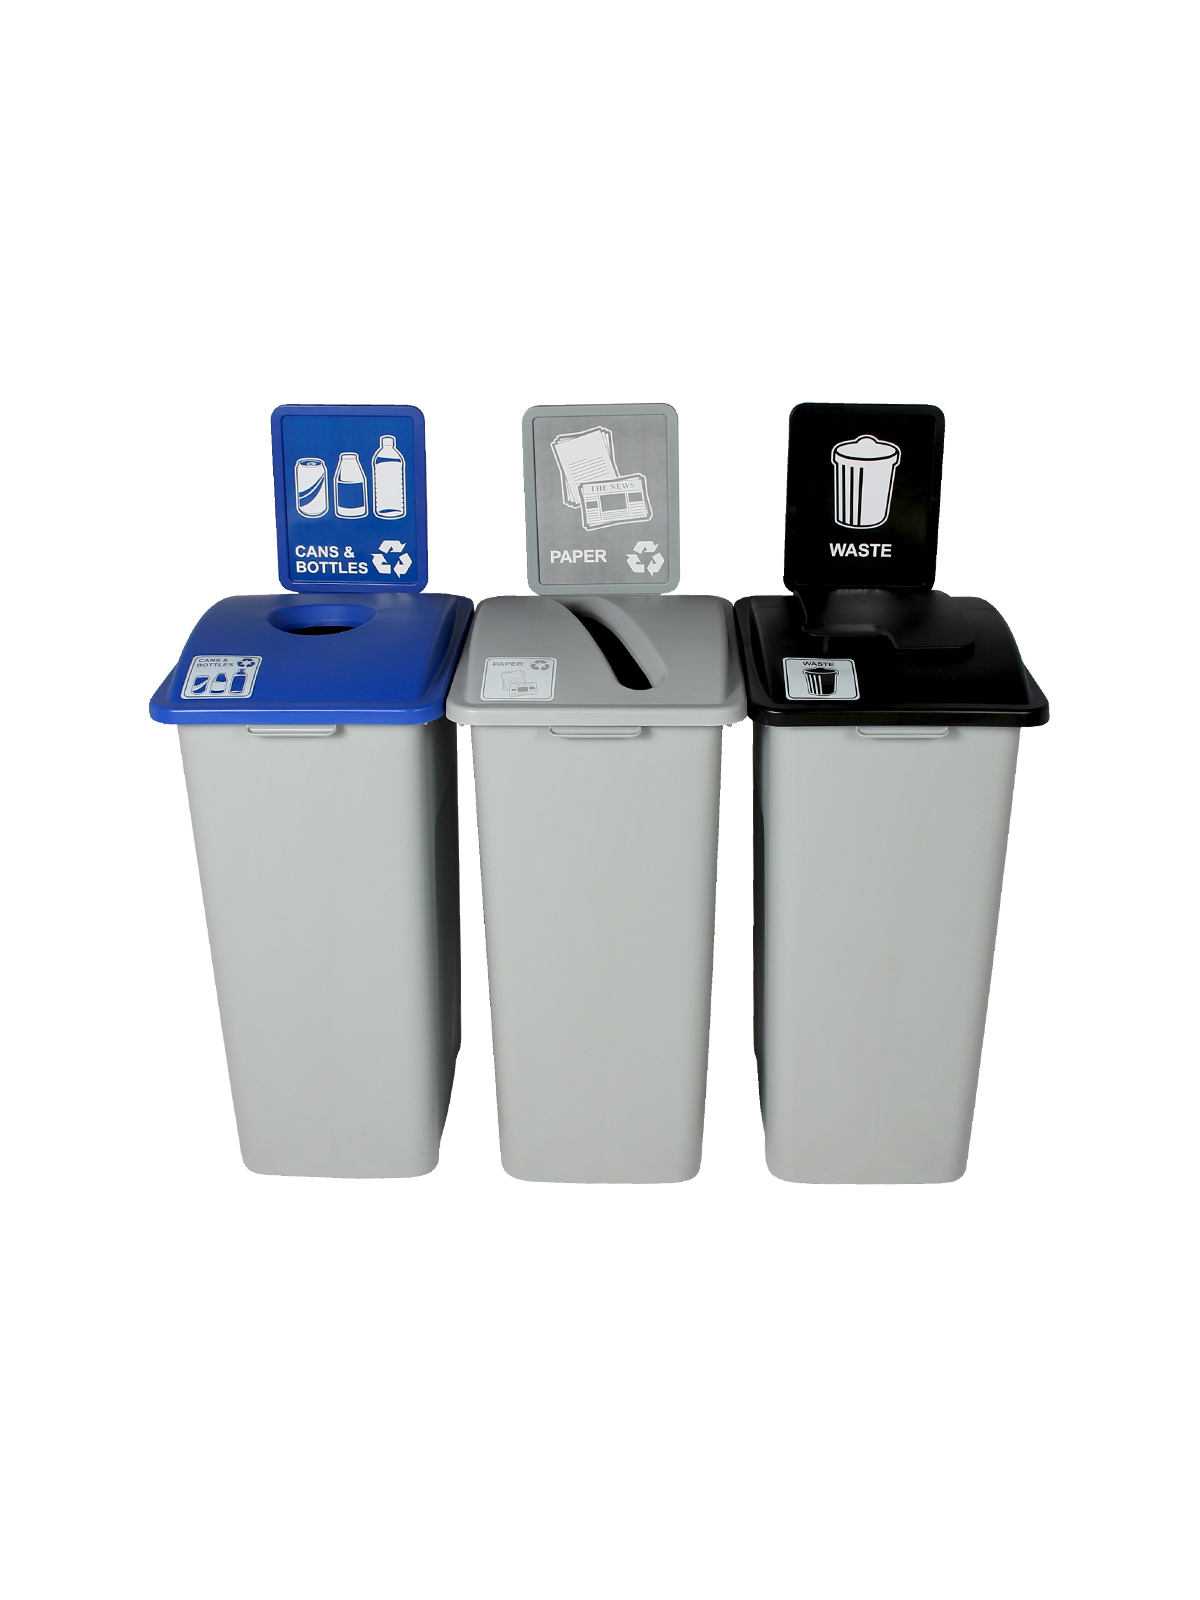 WASTE WATCHER XL - Triple - Cans & Bottles-Paper-Waste - Circle-Slot-Solid Lift - Grey-Blue-Grey-Black